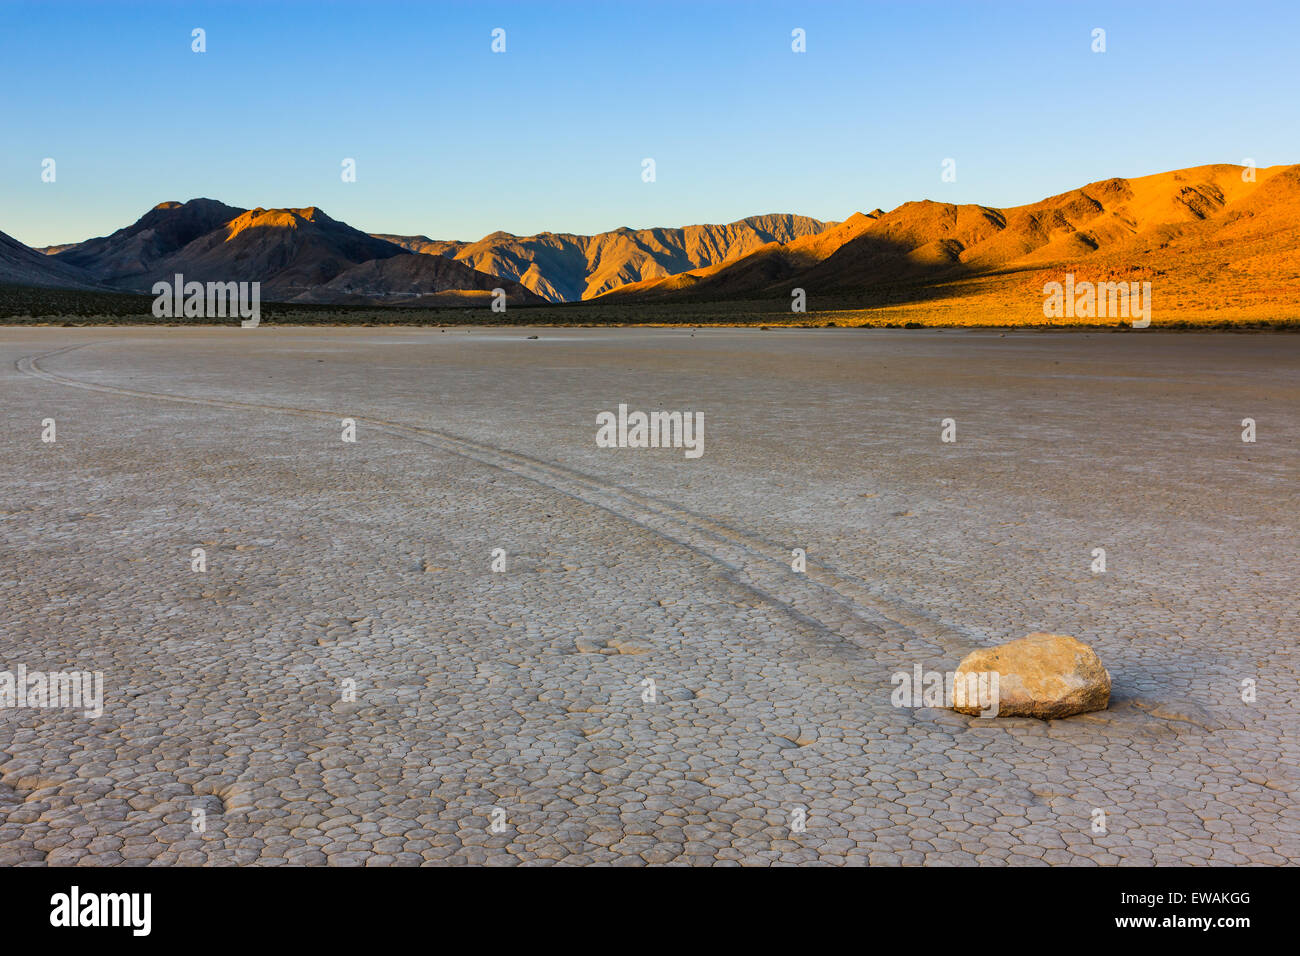 Sunrise at the Racetrack in Death Valley National Park in California, USA - Stock Image